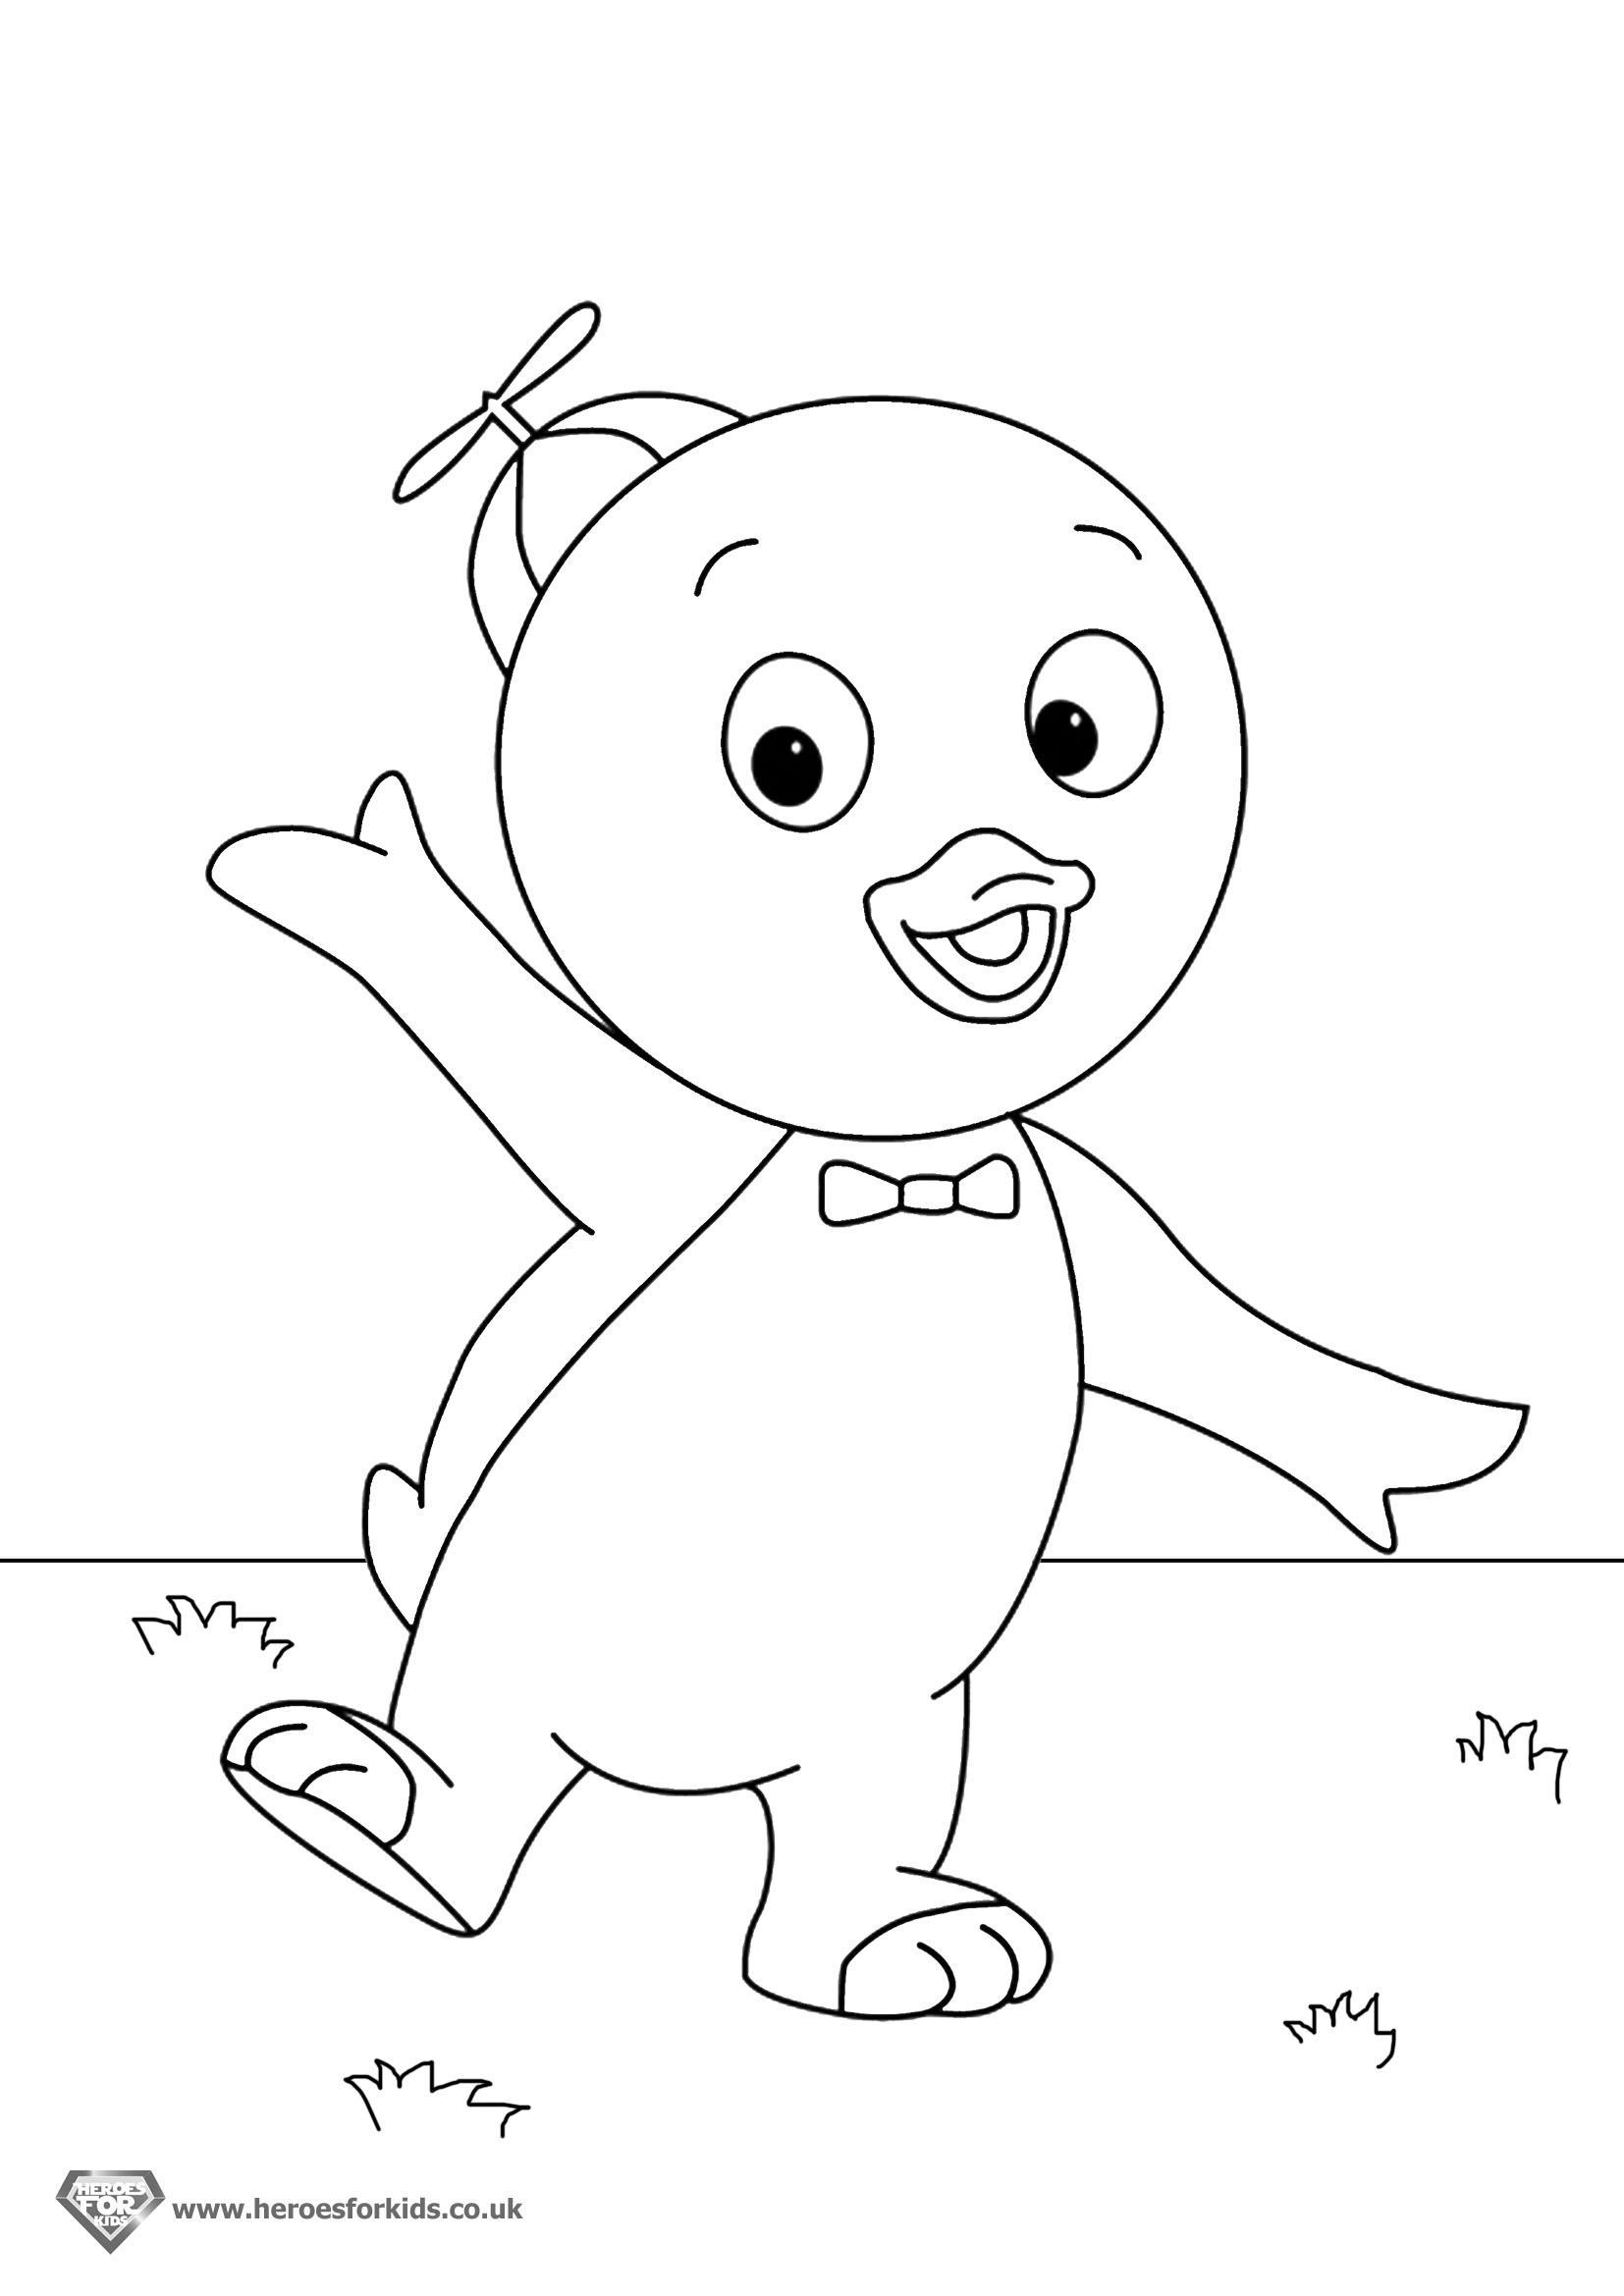 13 backyardigans coloring pages